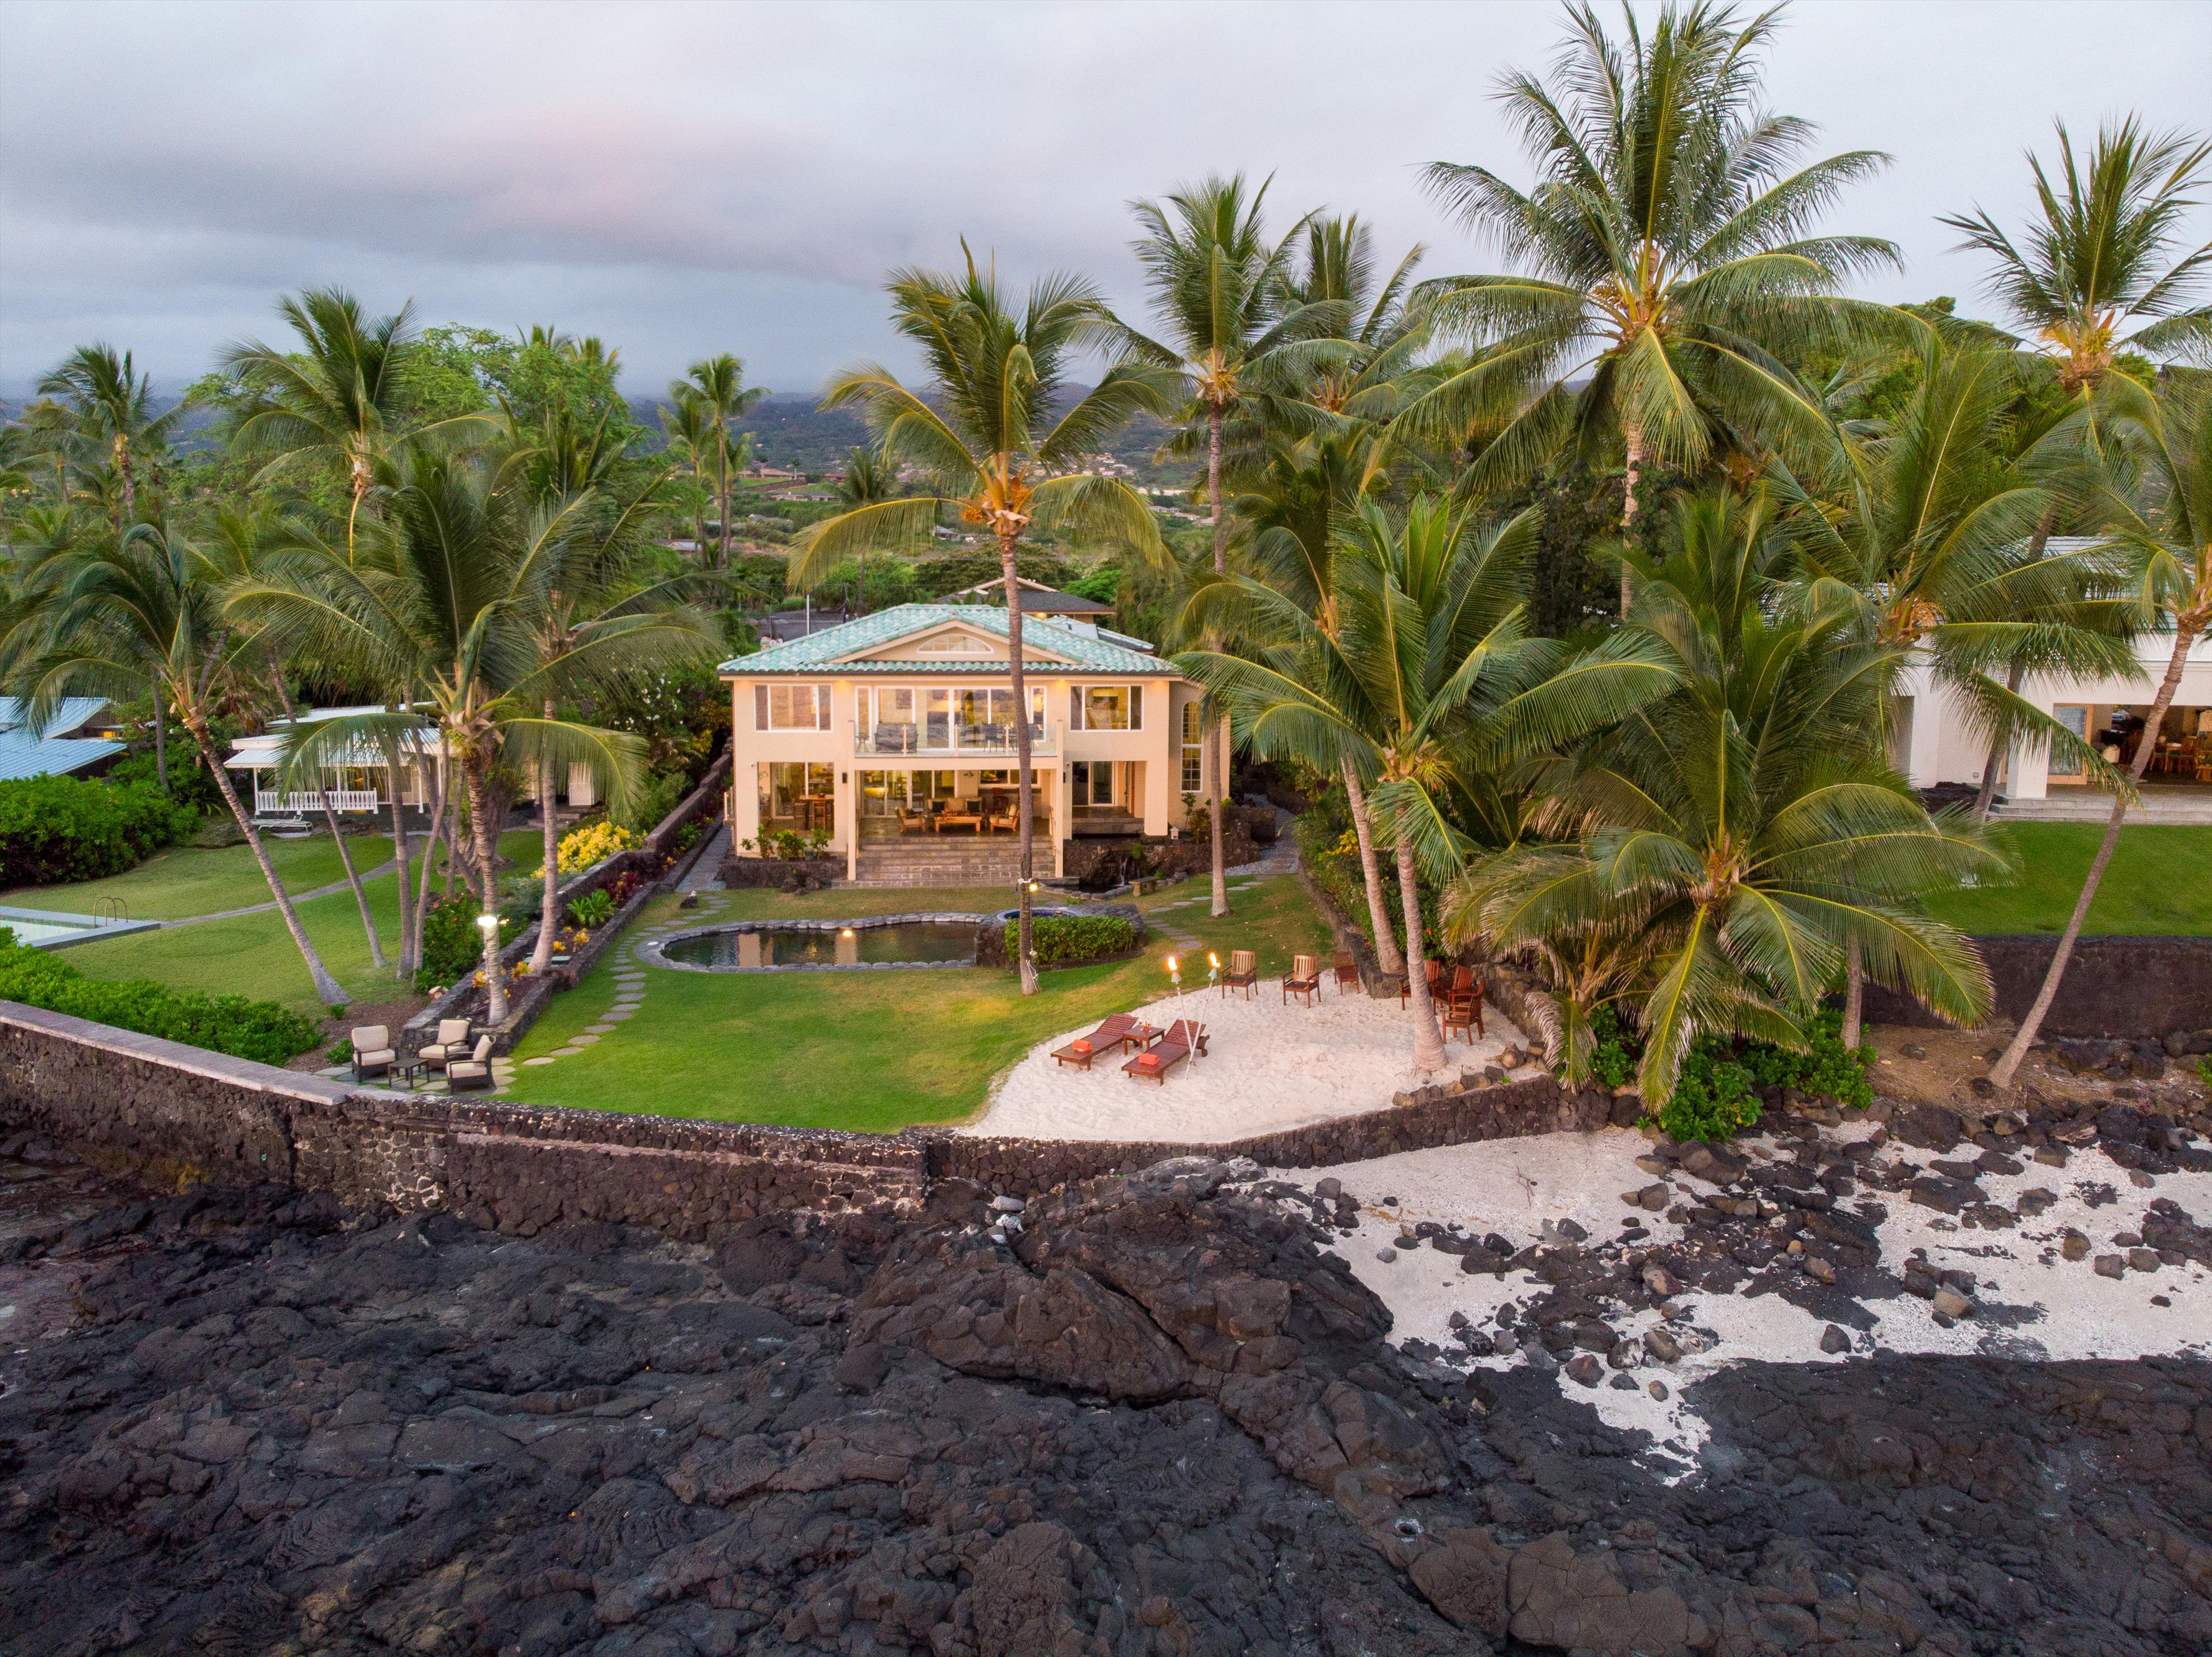 Moana Hale Oceanfront Vacation